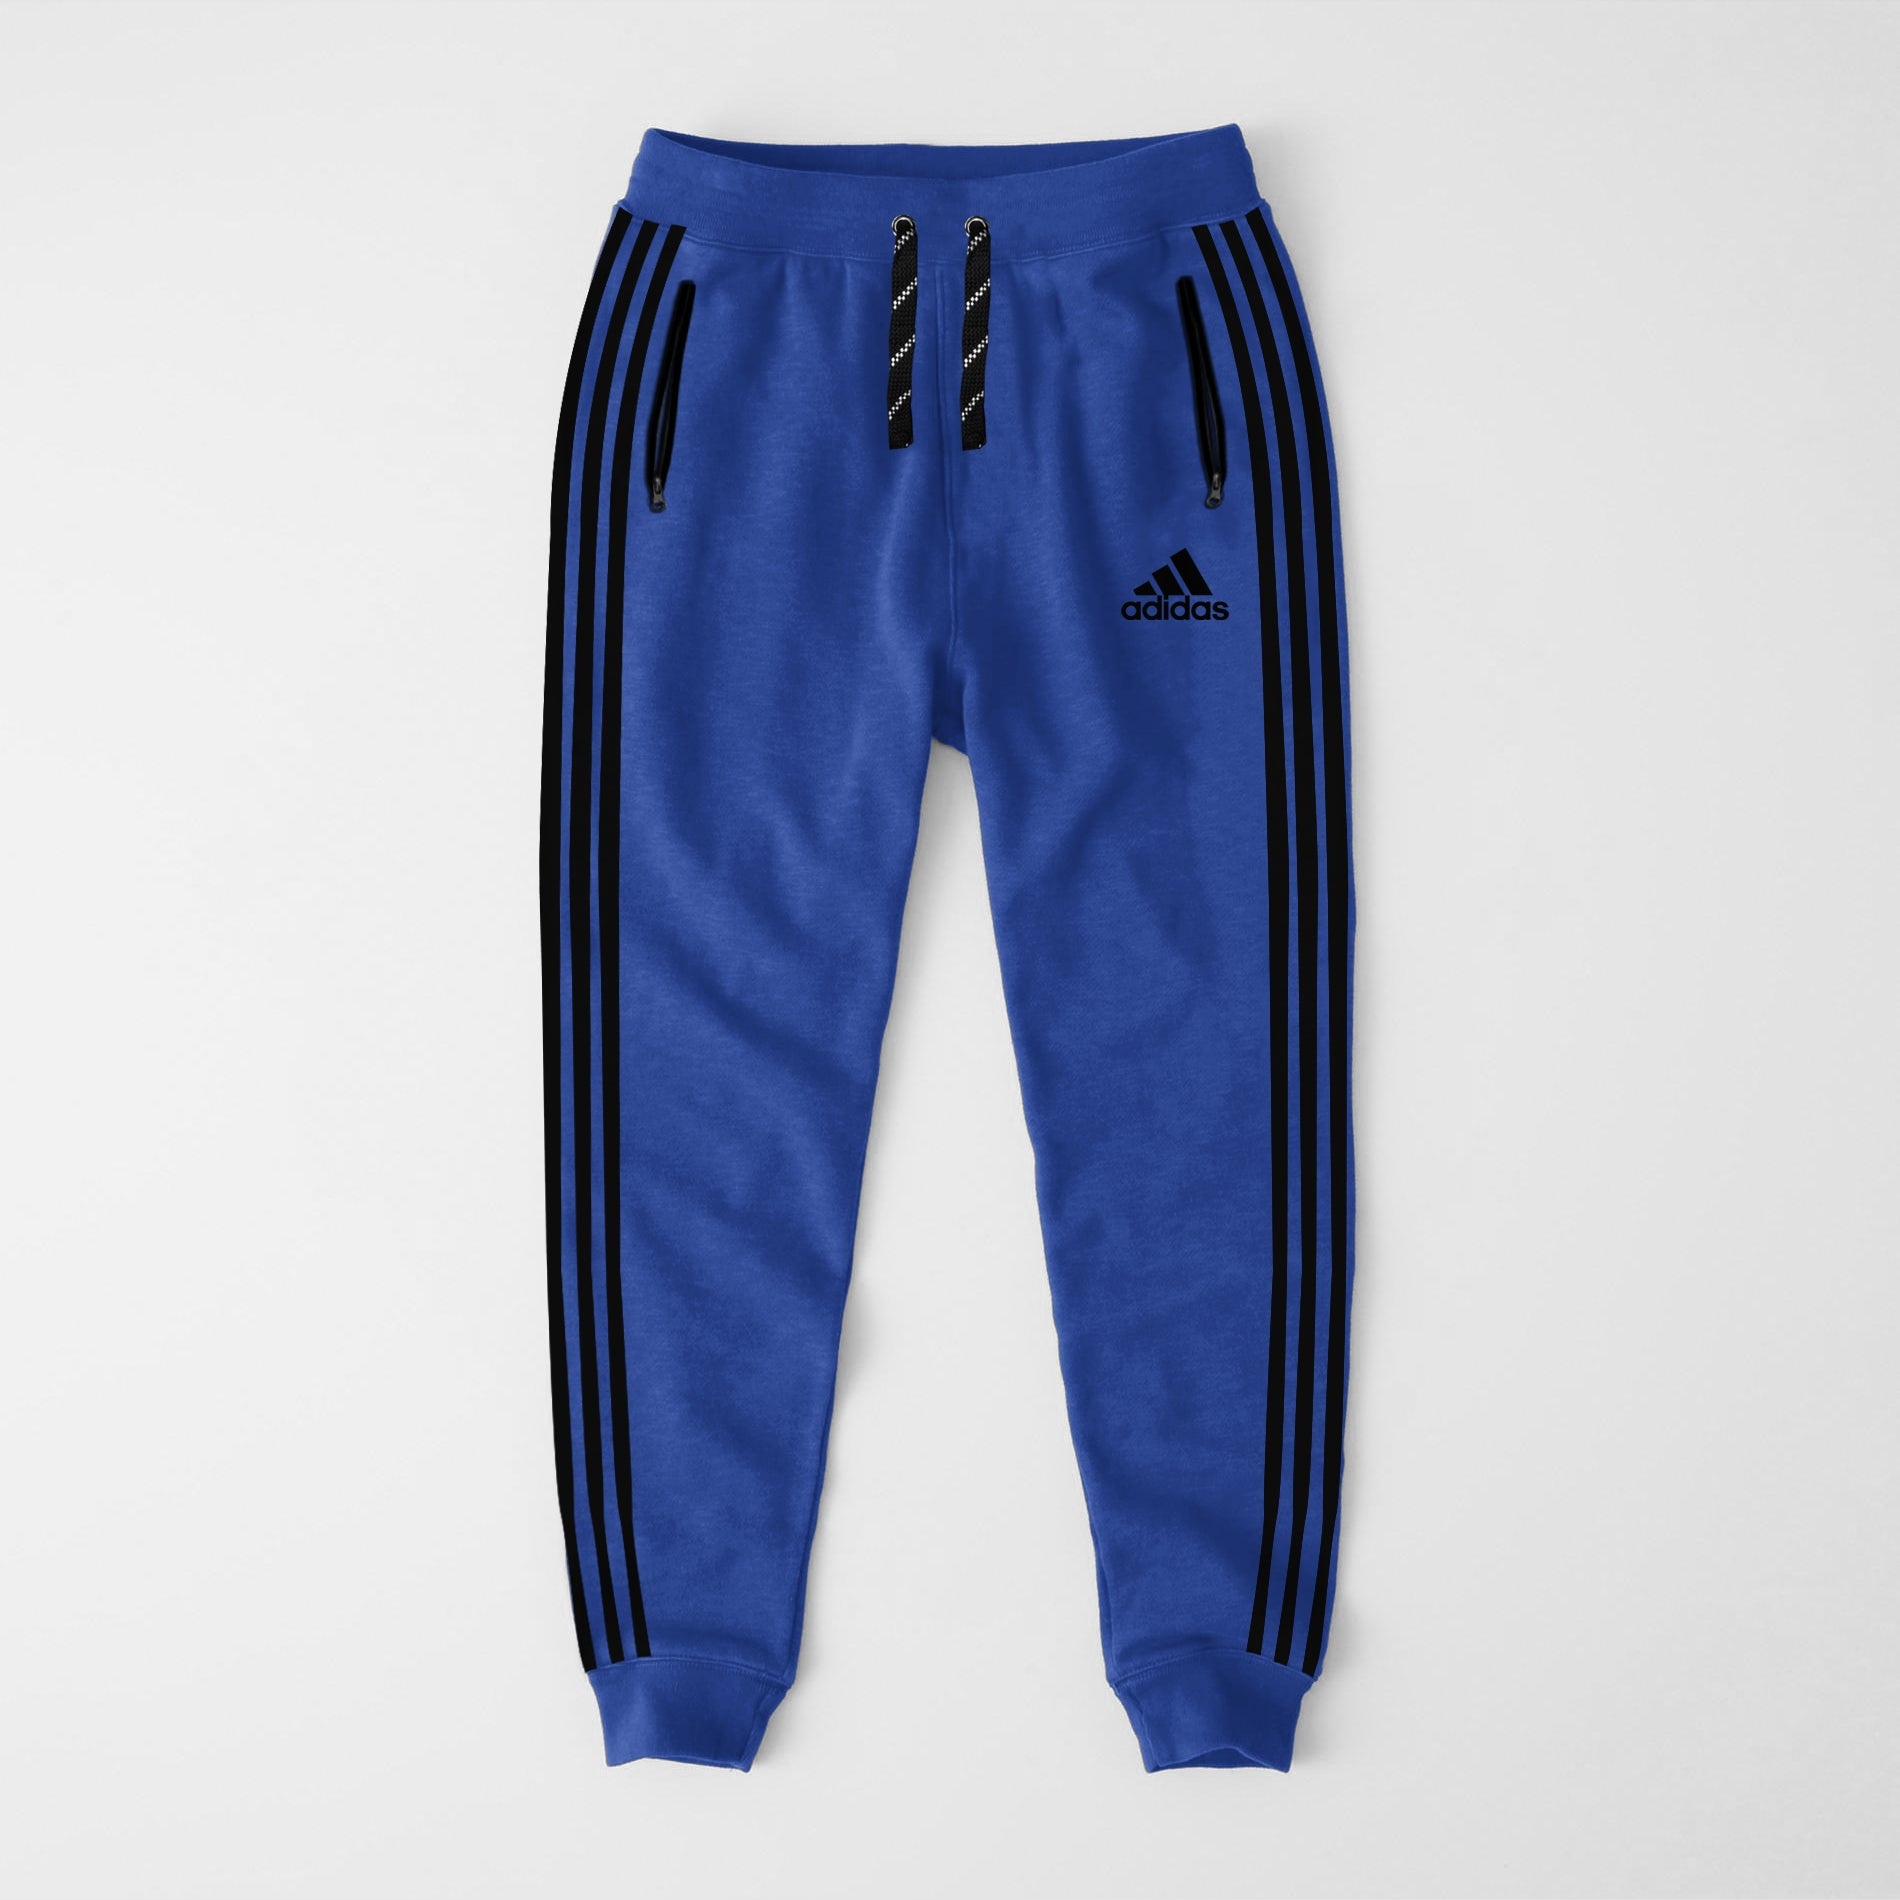 Adidas Single Jersey Slim Fit Jogger Trouser For Men-Light Blue-NA8244